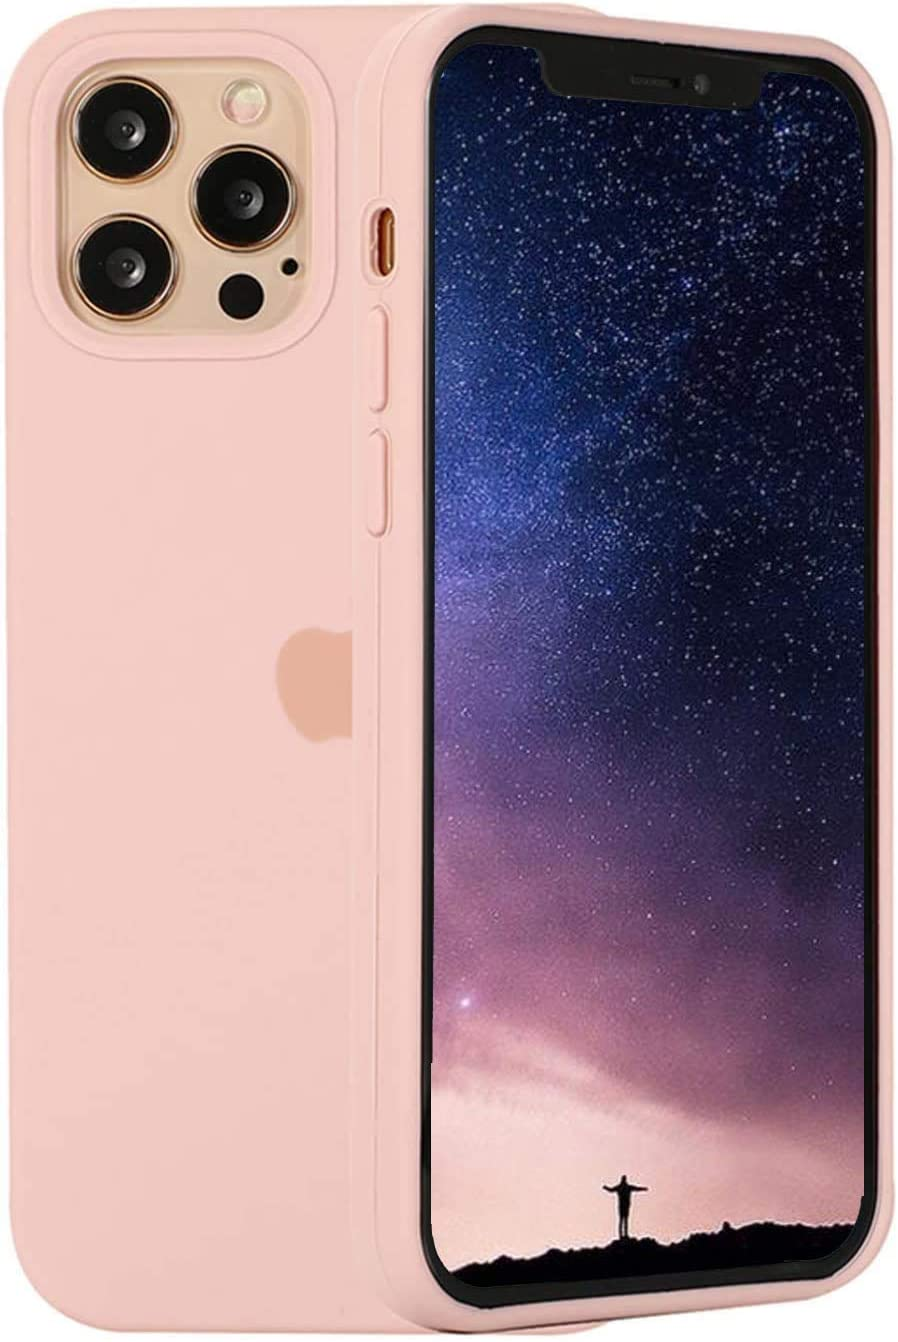 Silicone Case Compatible for iPhone 12   iPhone 12 Pro 6.1 Inch, Soft Silicone Gel Rubber Slim Soft Full Body Protection Bumper Cute Case for Women and Girls - Pink Sand